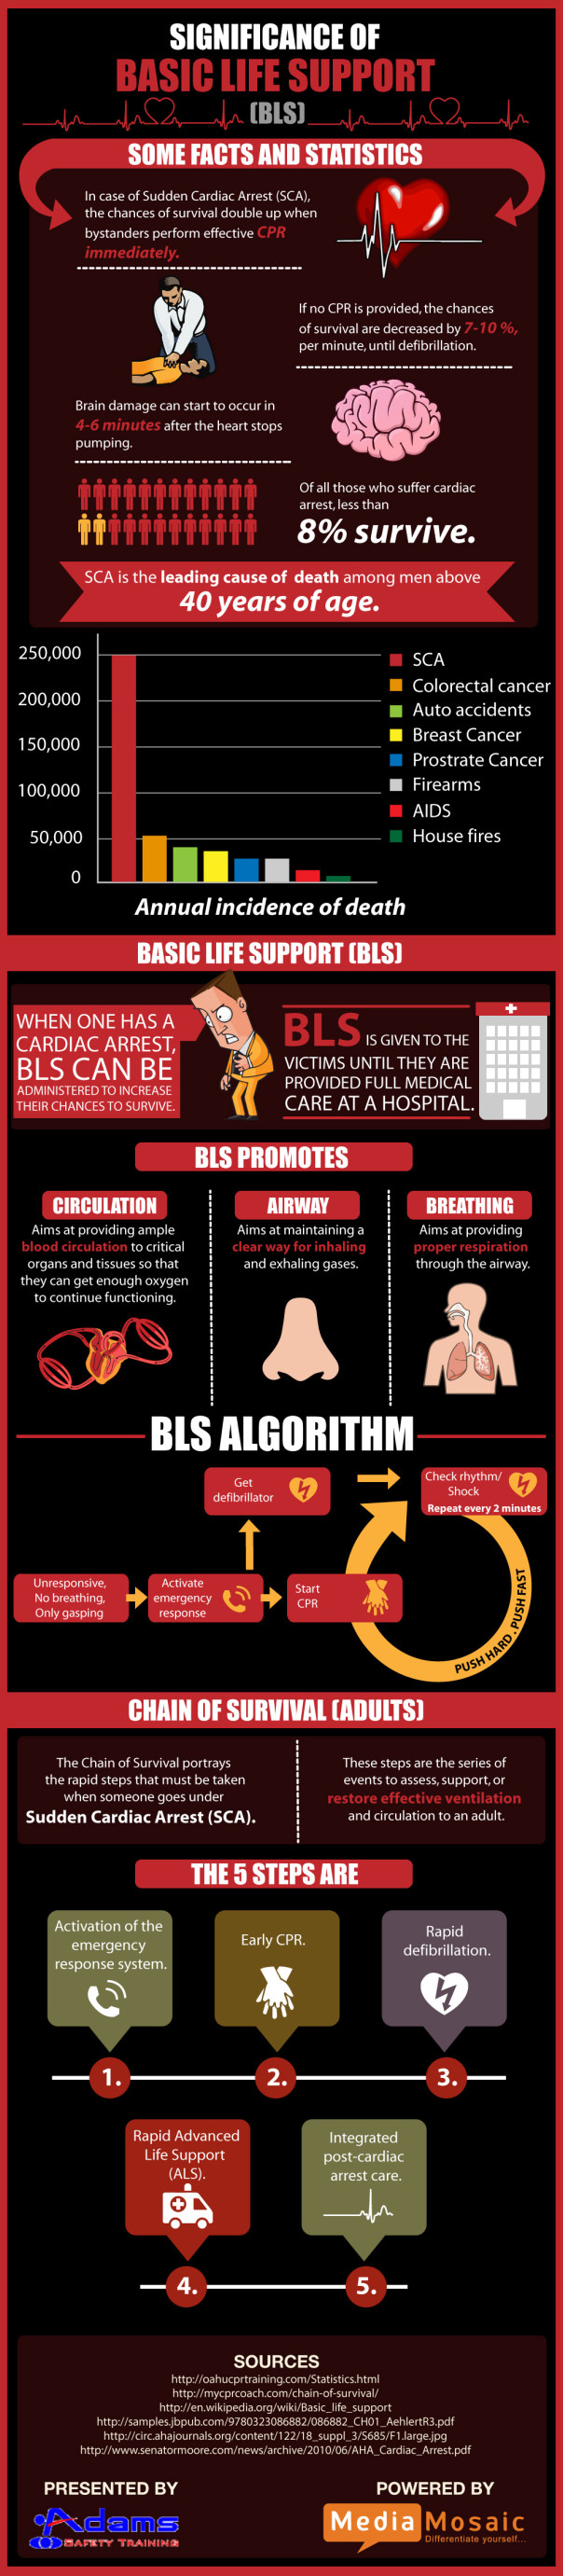 Significance of basic life support infographic adams safety post navigation xflitez Images